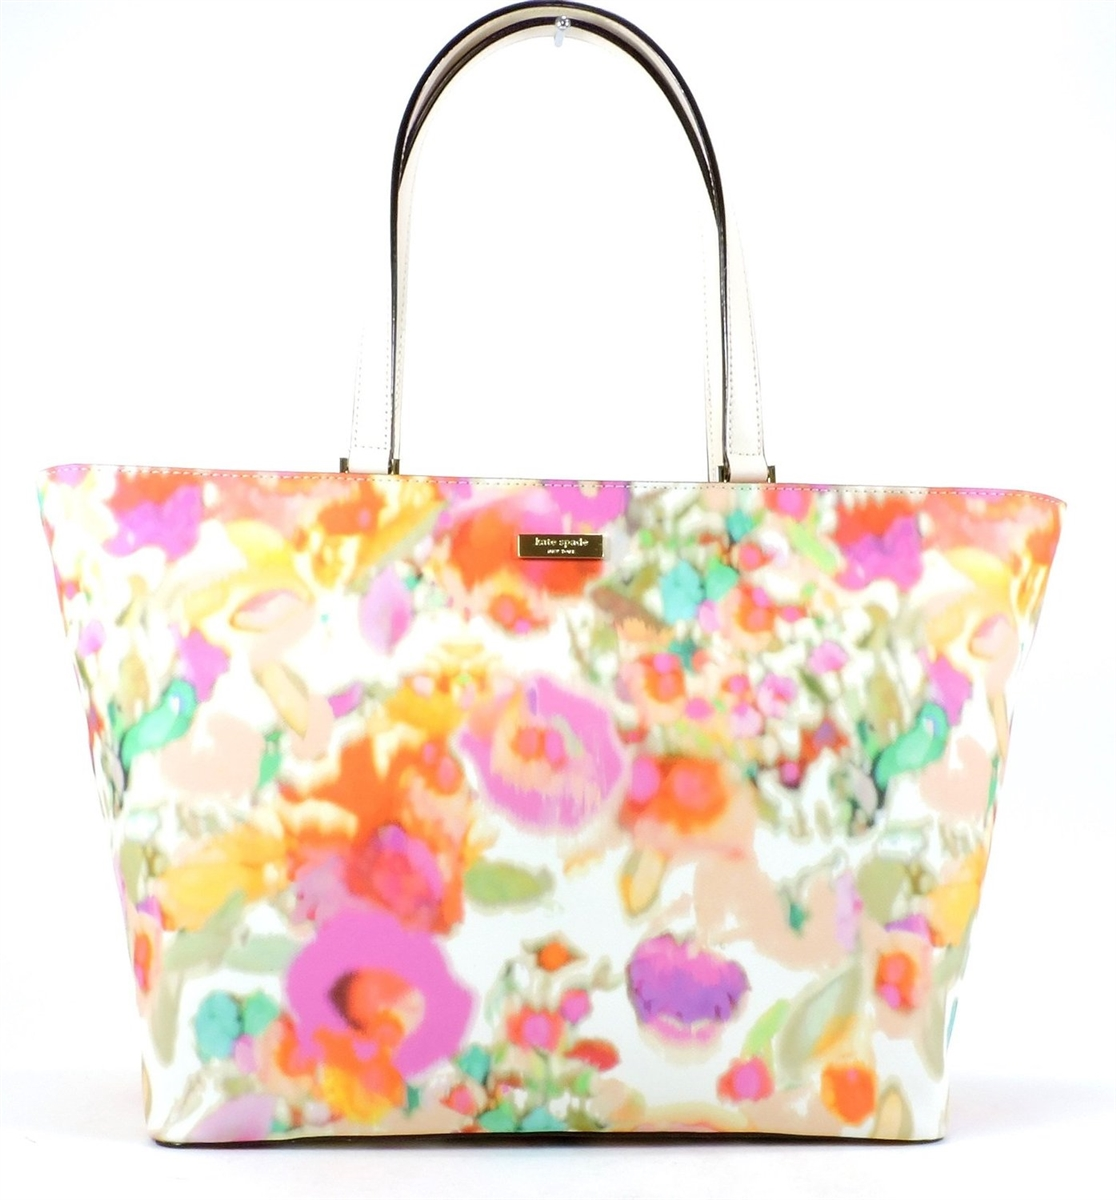 Kate Spade Grant Street Jules Floral Tote Bag, Giverny Floral